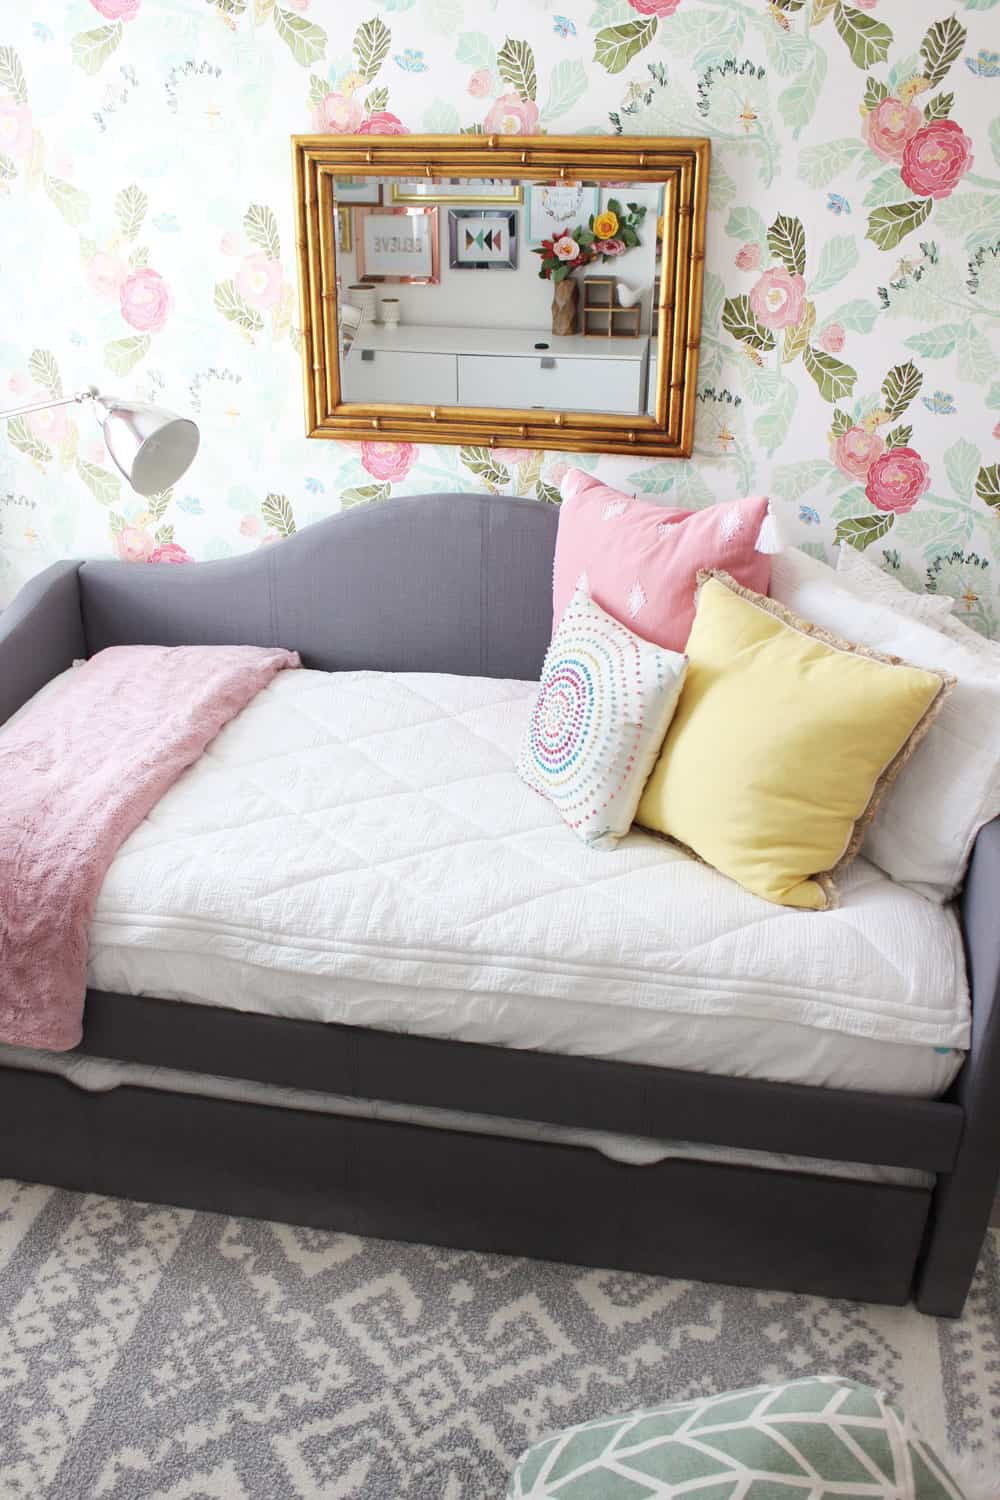 girls room with bed against a floral wall and grey tribal rug